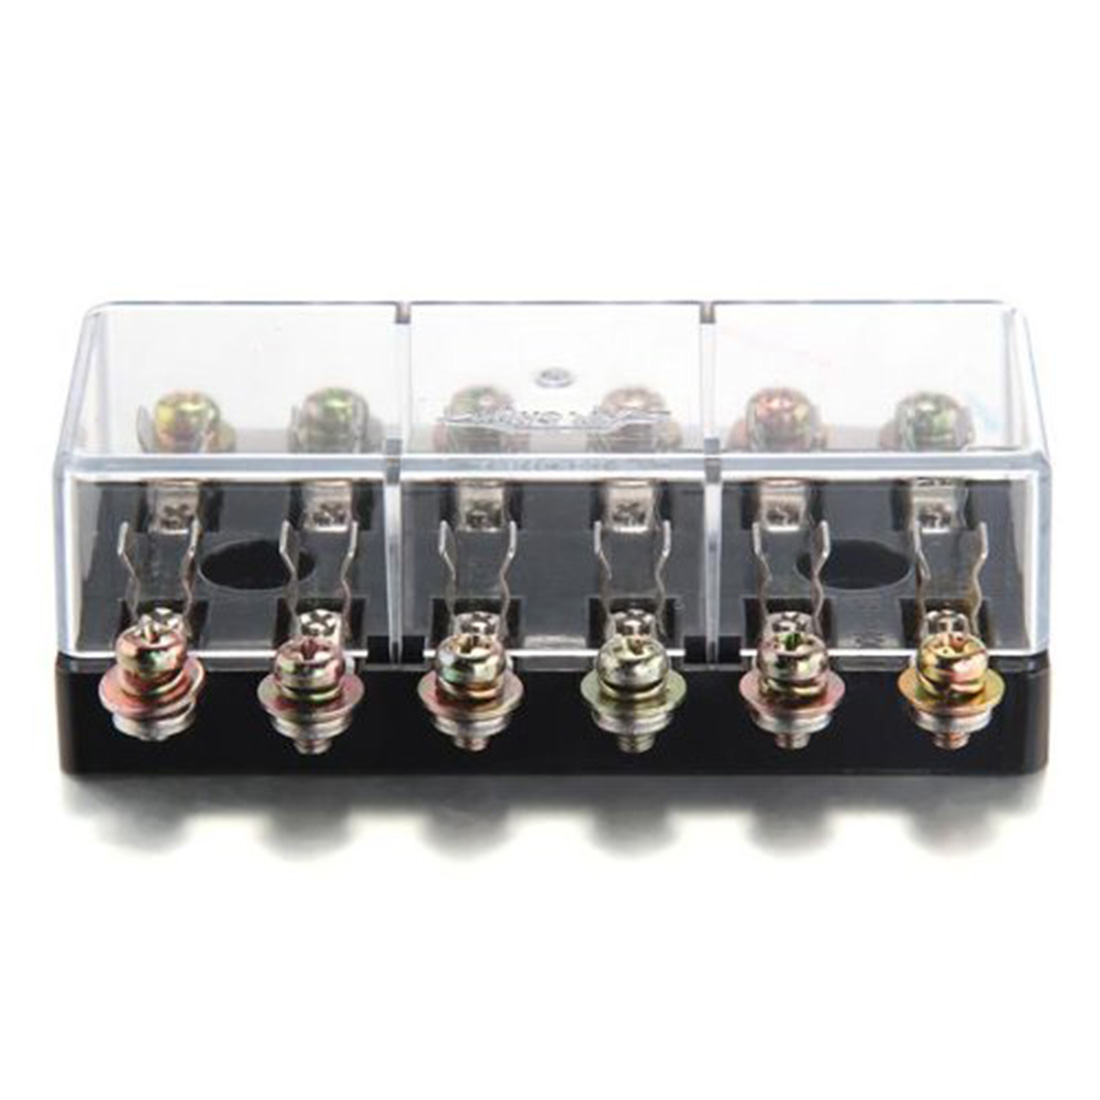 small resolution of marsnaska brand new universal 12v 6 way fusebox fuse blade fuse box fuseholder kit car boat in fuses from automobiles motorcycles on aliexpress com